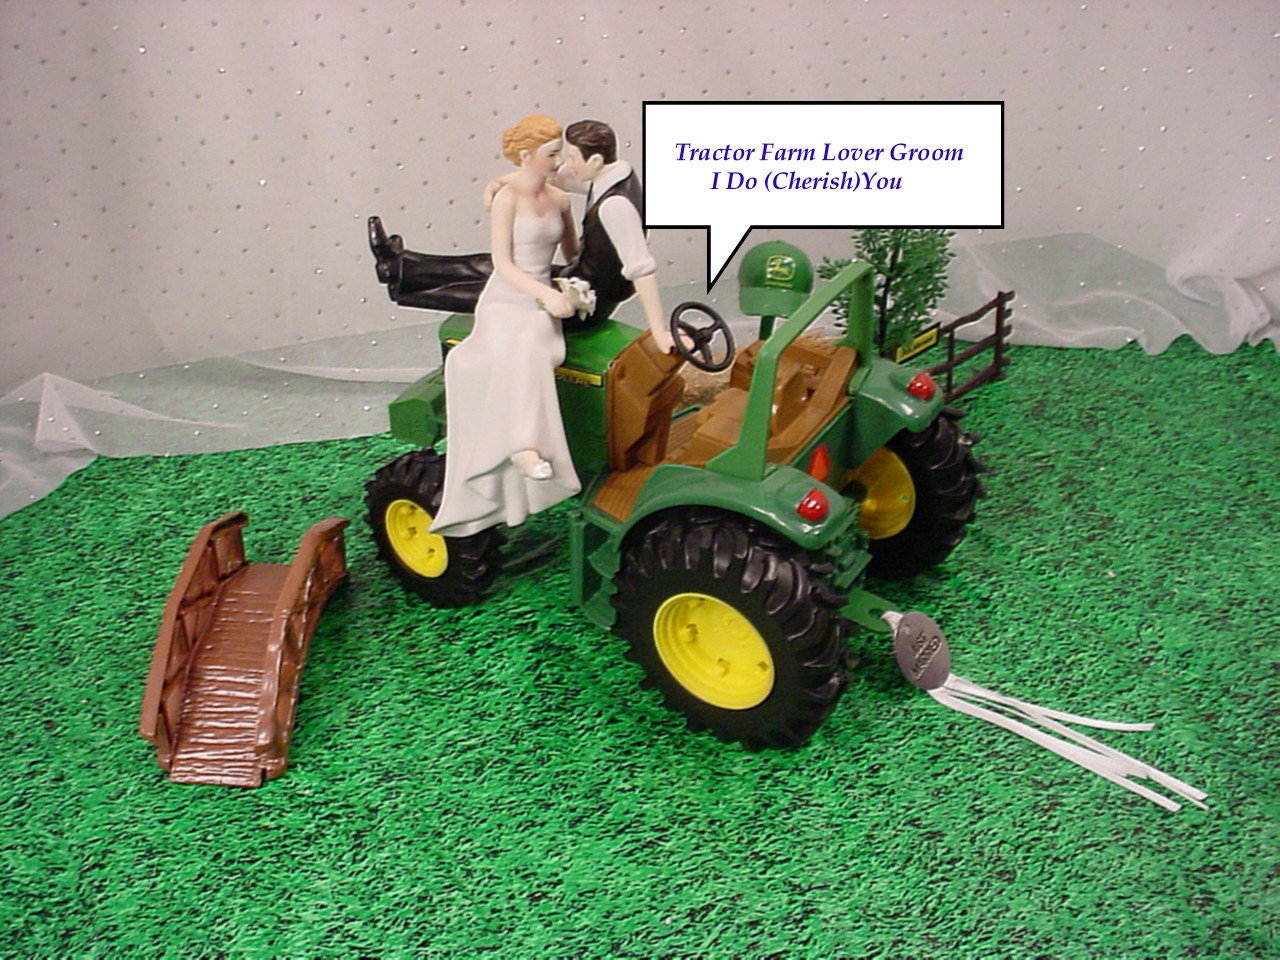 Green Outdoor Die Cast Farm Tractor County Lover Couple Rustic